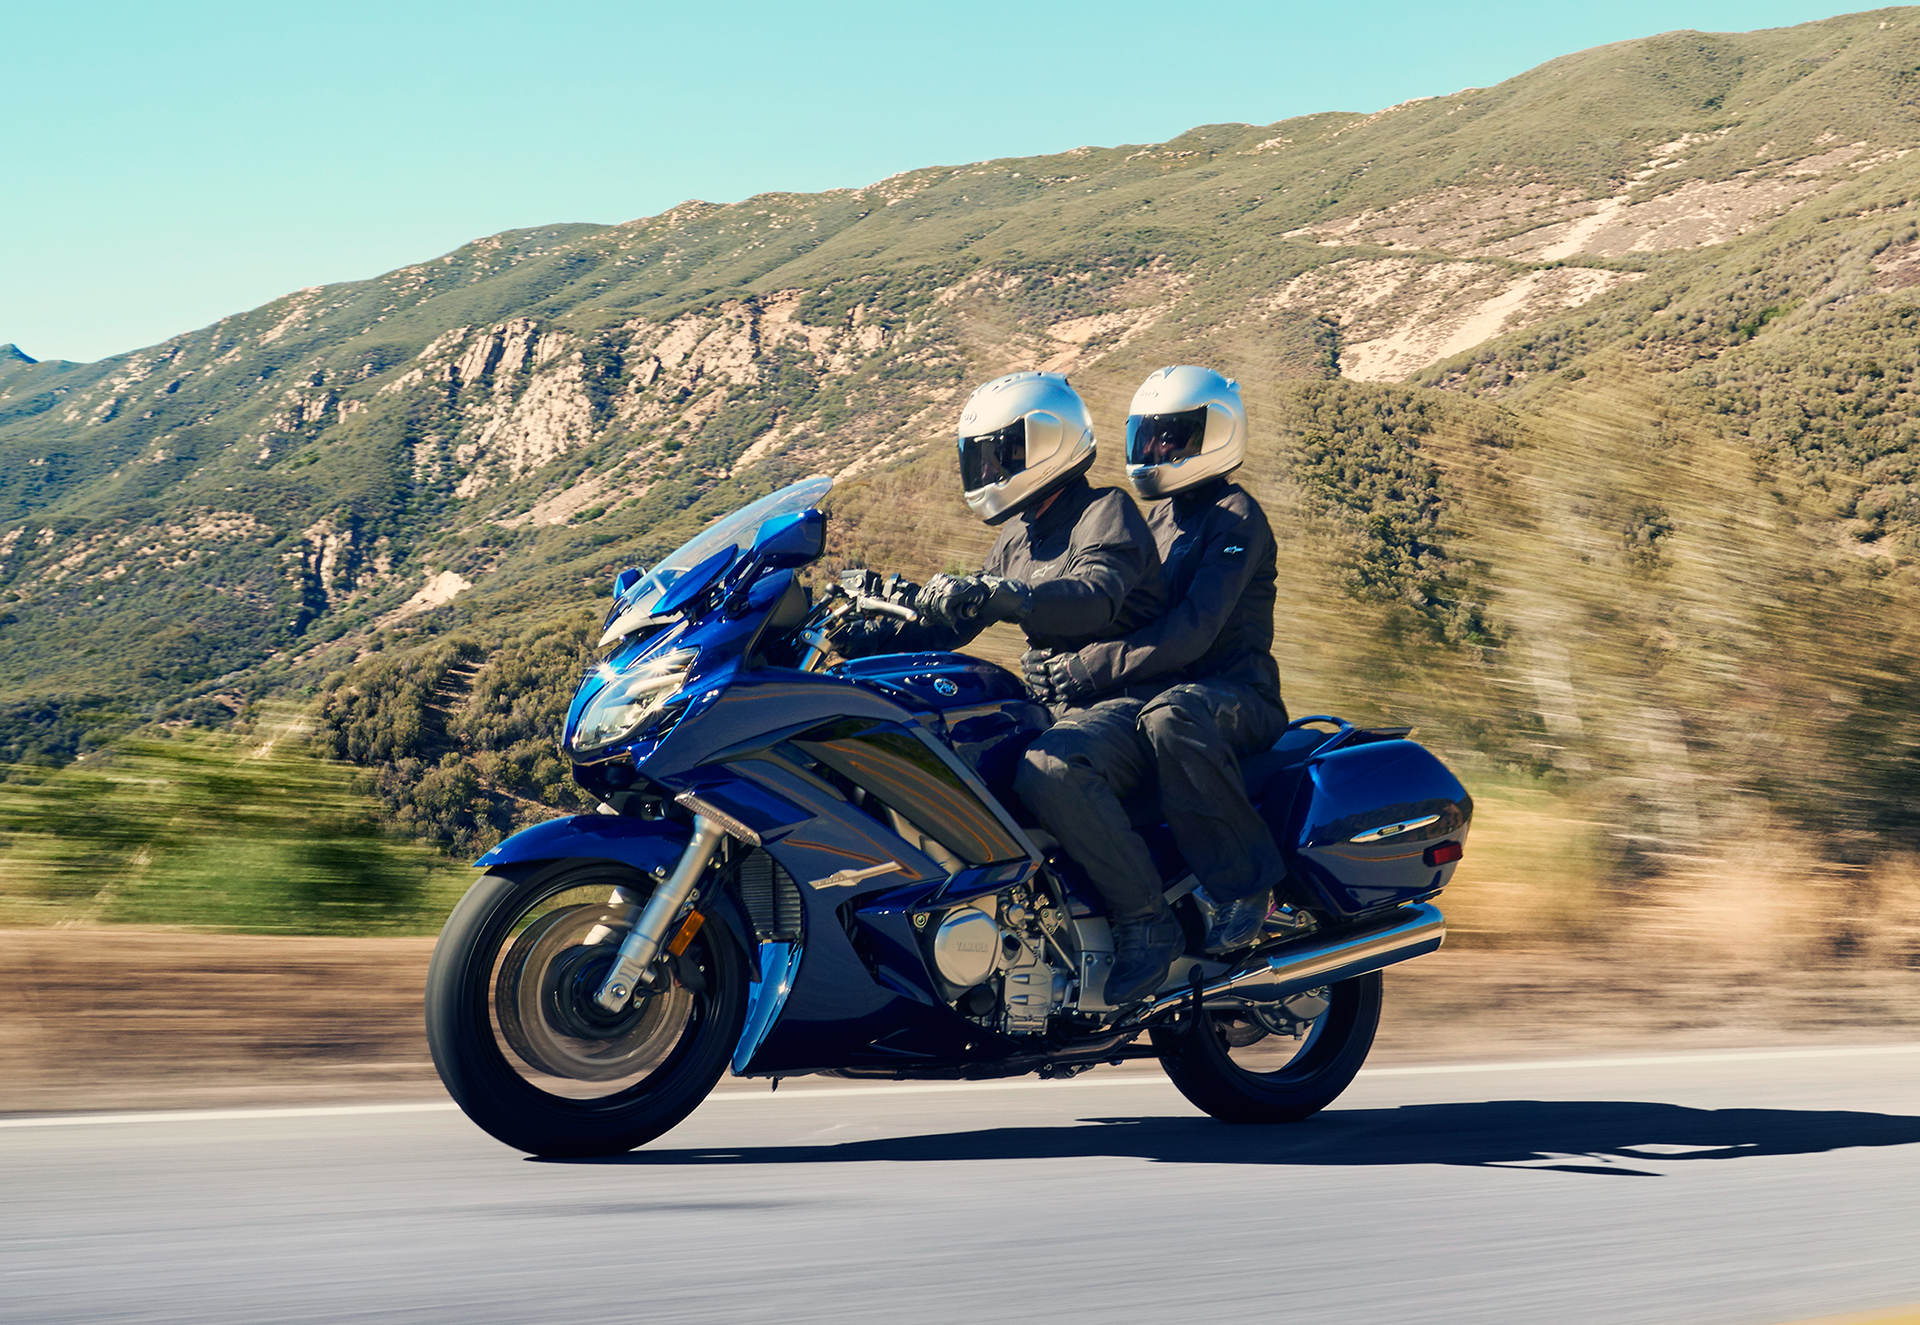 Yamaha s big fjr1300 sport tourer has been around for more than a decade but that doesn t mean yamaha hasn t made significant changes over the years